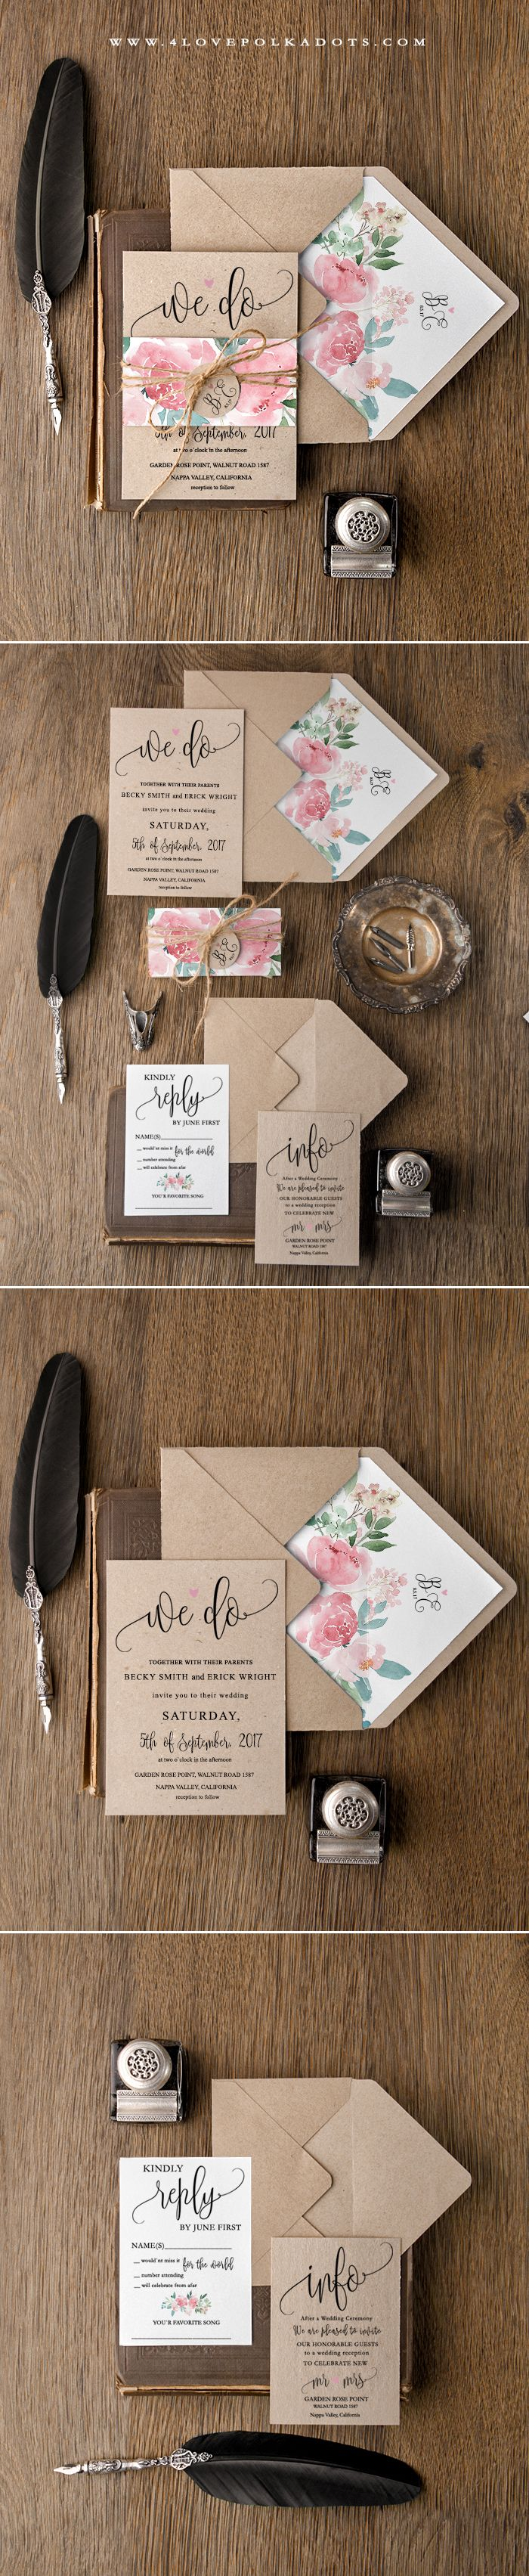 Romantic Floral Wedding Invitation - fully custmized ...